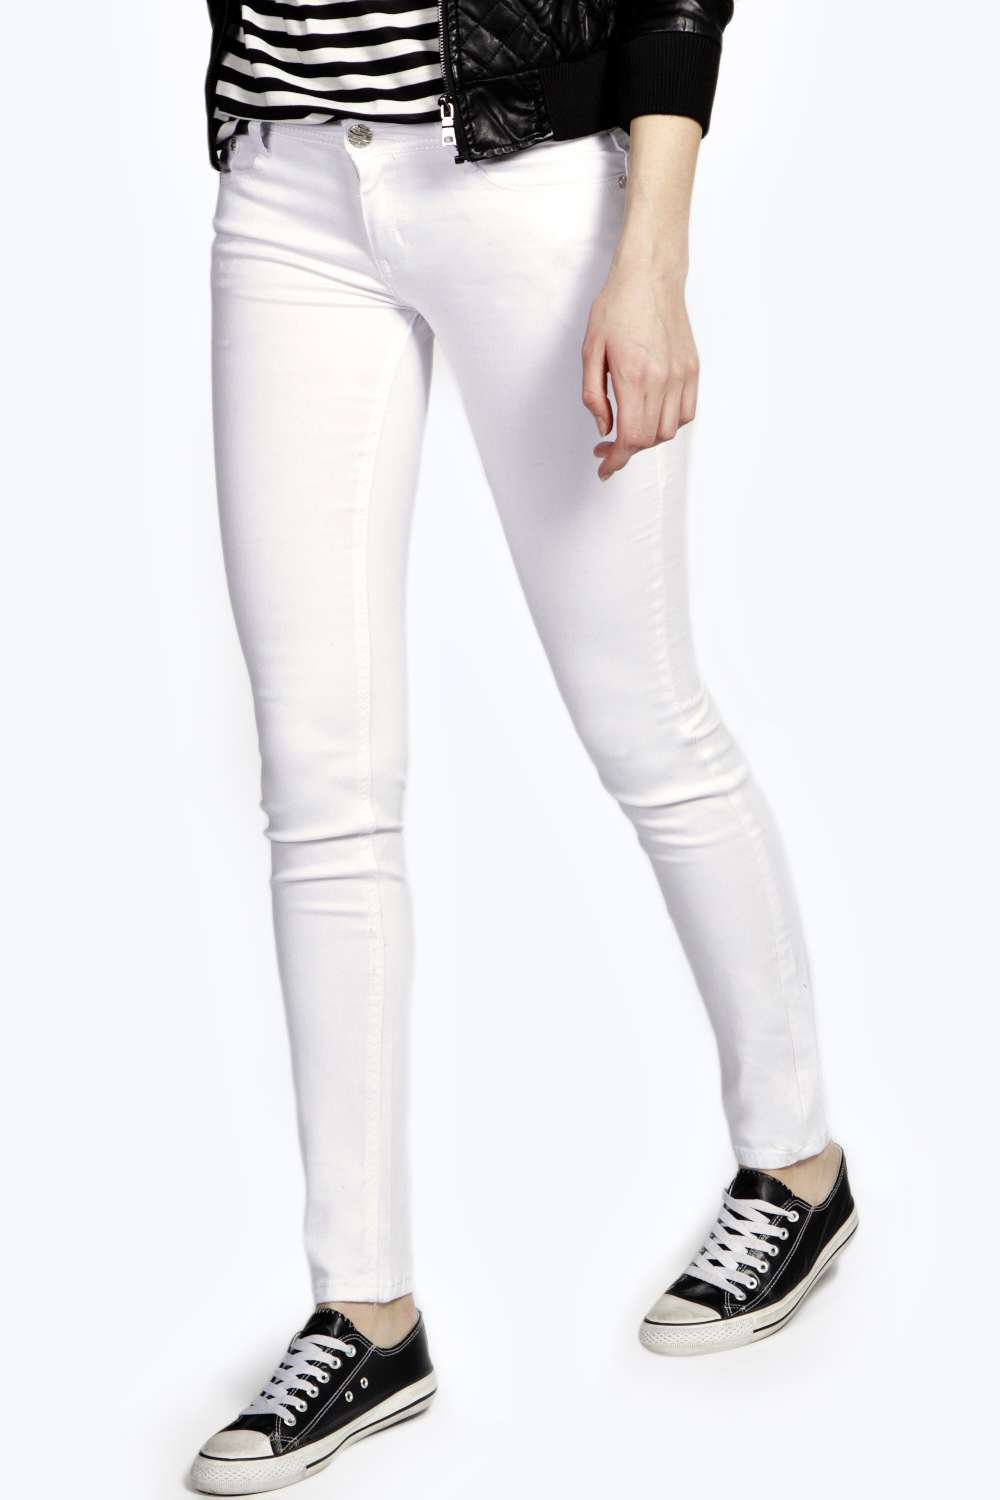 Low Rise Super Skinny White Jeans